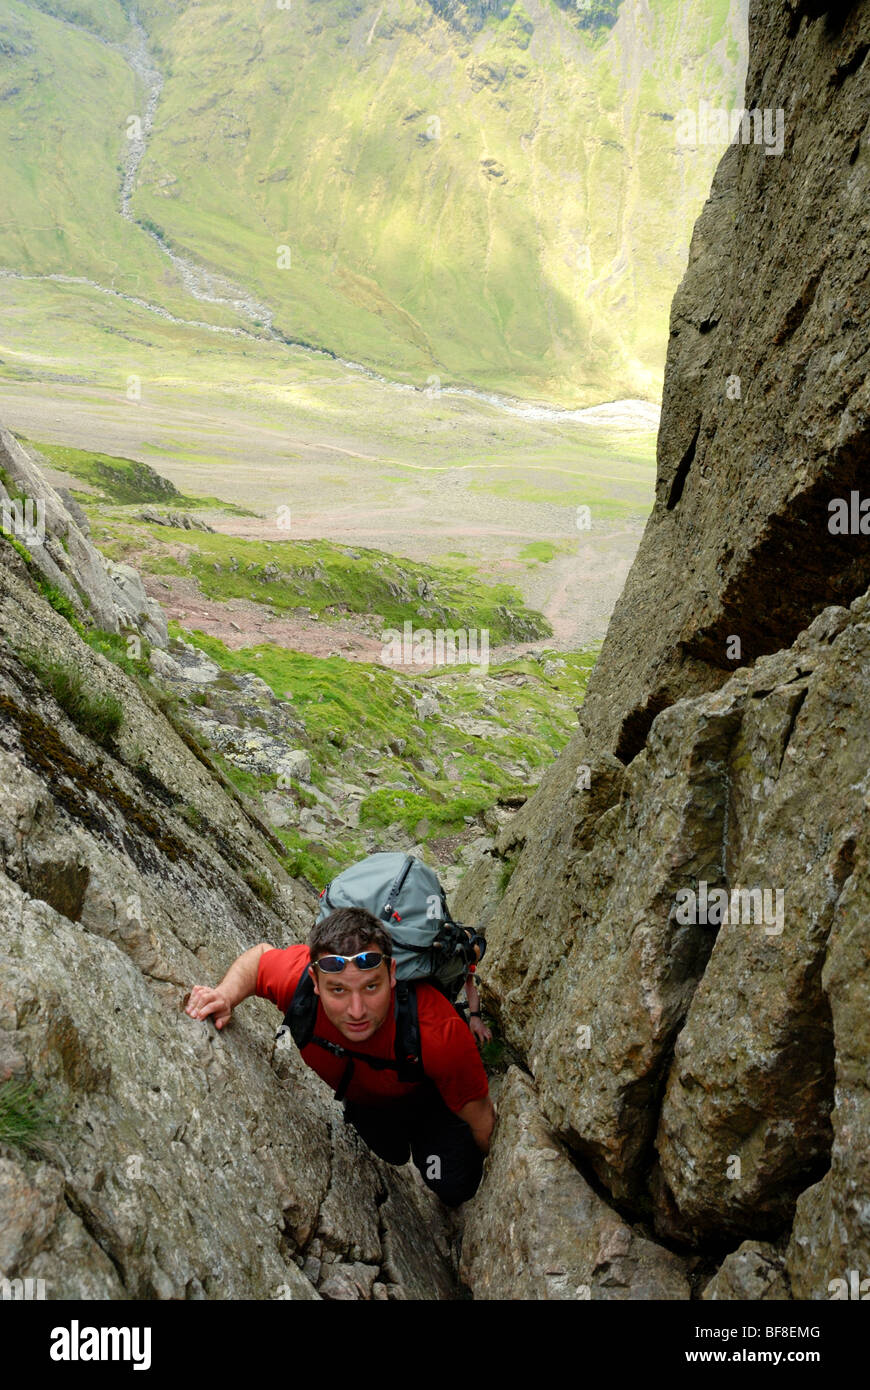 A climber 'Threading the Needle' (climbing behind Napes Needle) in Wasdale, Lake District - Stock Image